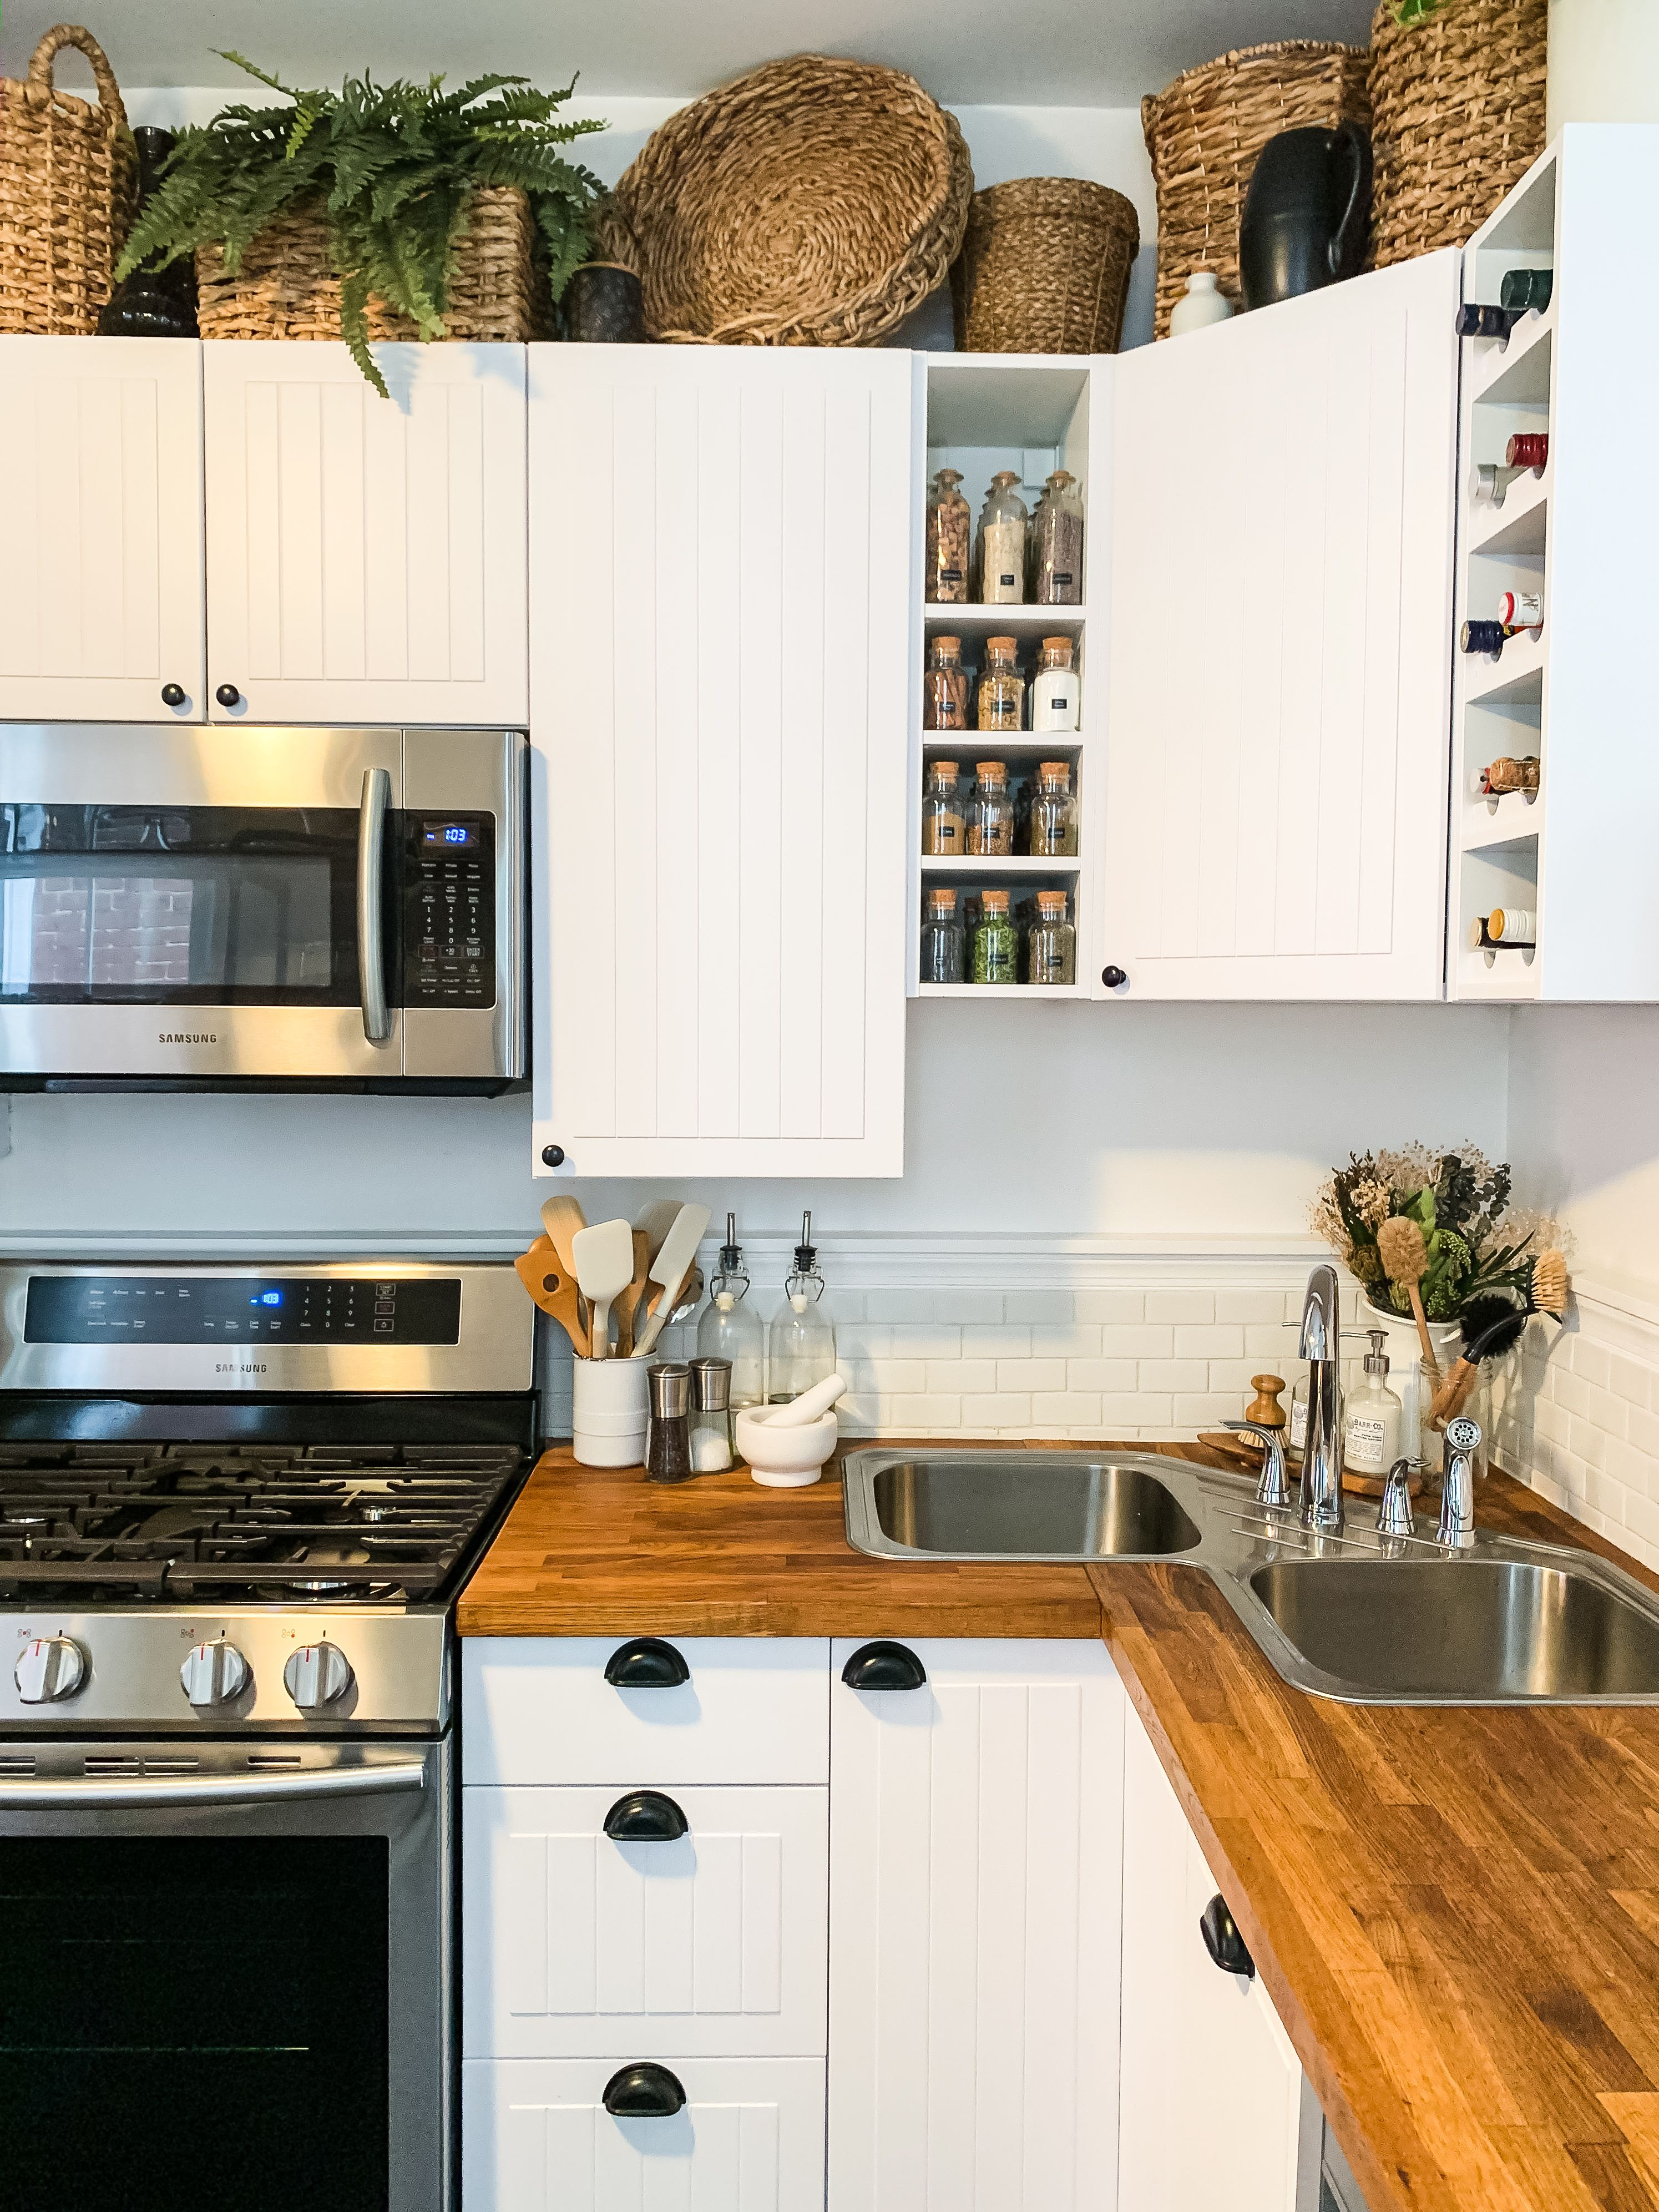 Decorating Above Kitchen Cabinets With Baskets And Plants Top Decor